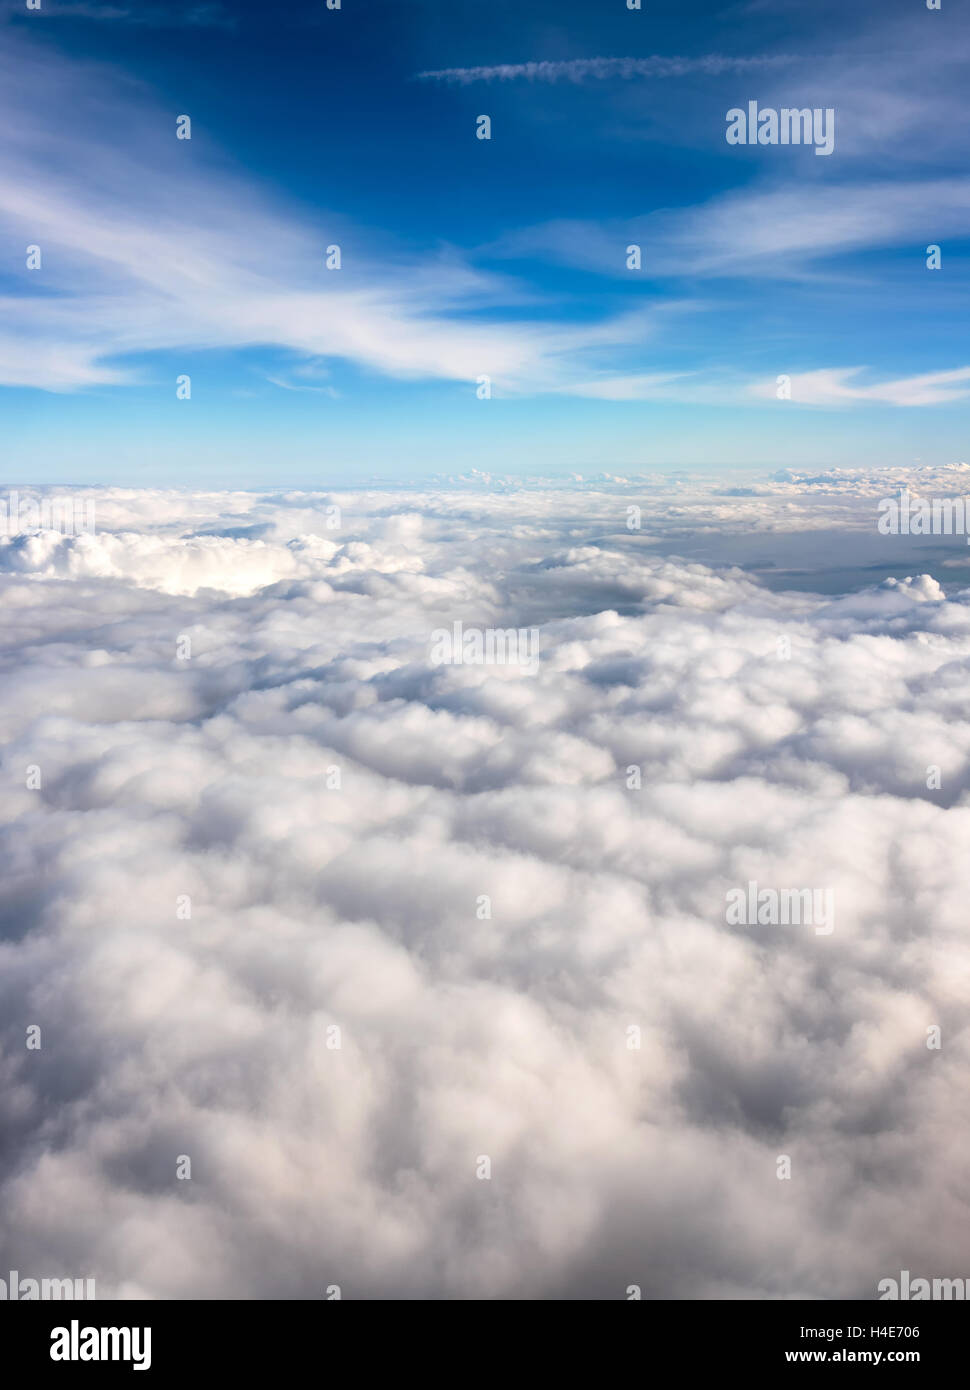 Flying high above a layer of dense white fluffy clouds in clear blue sky and sunshine in a travel concept - Stock Image